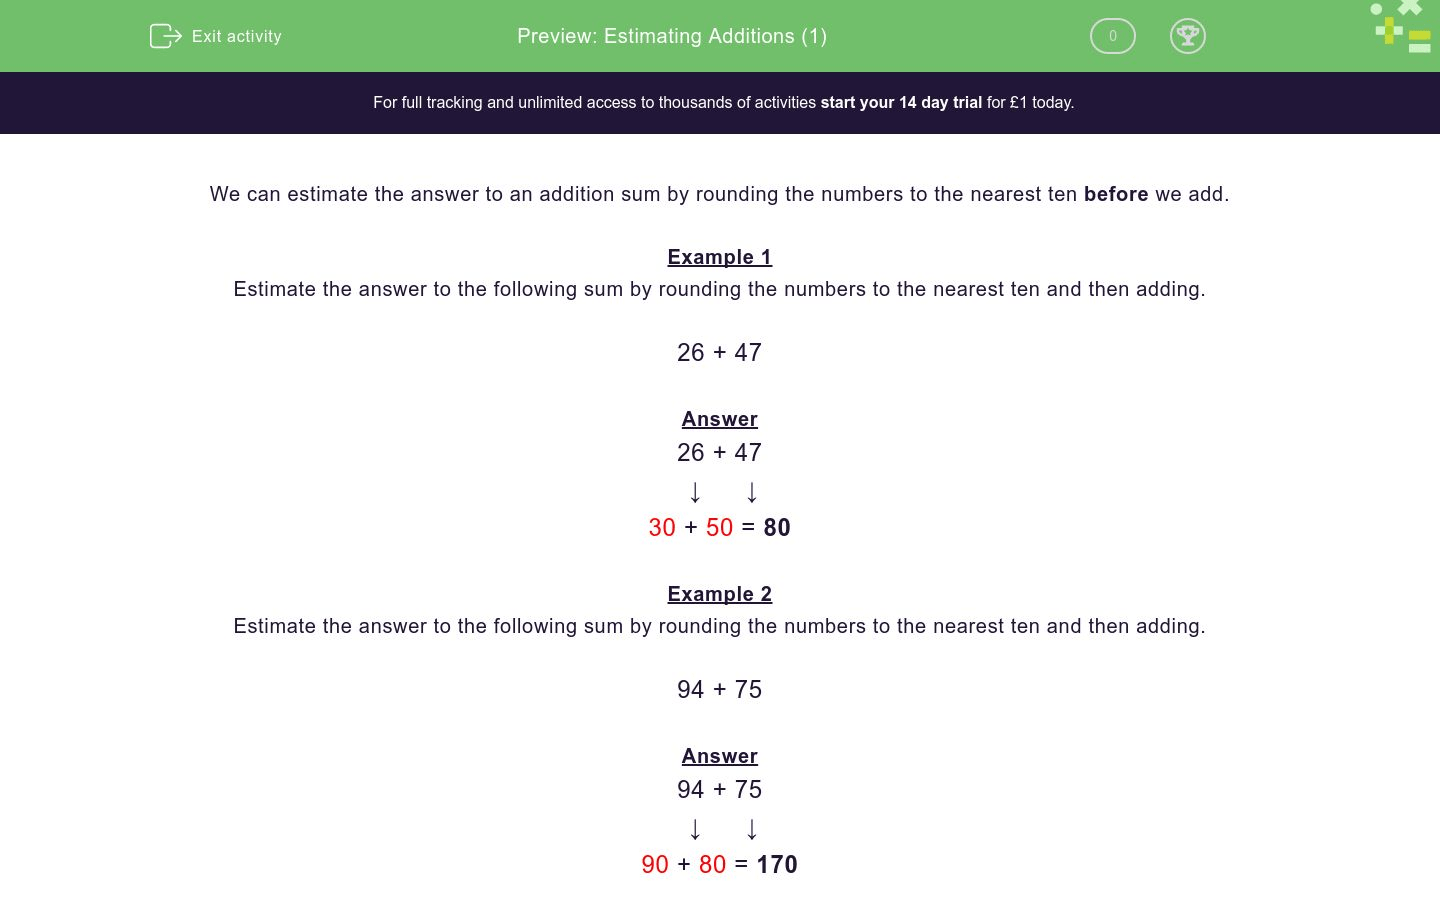 Estimating Additions 1 Worksheet